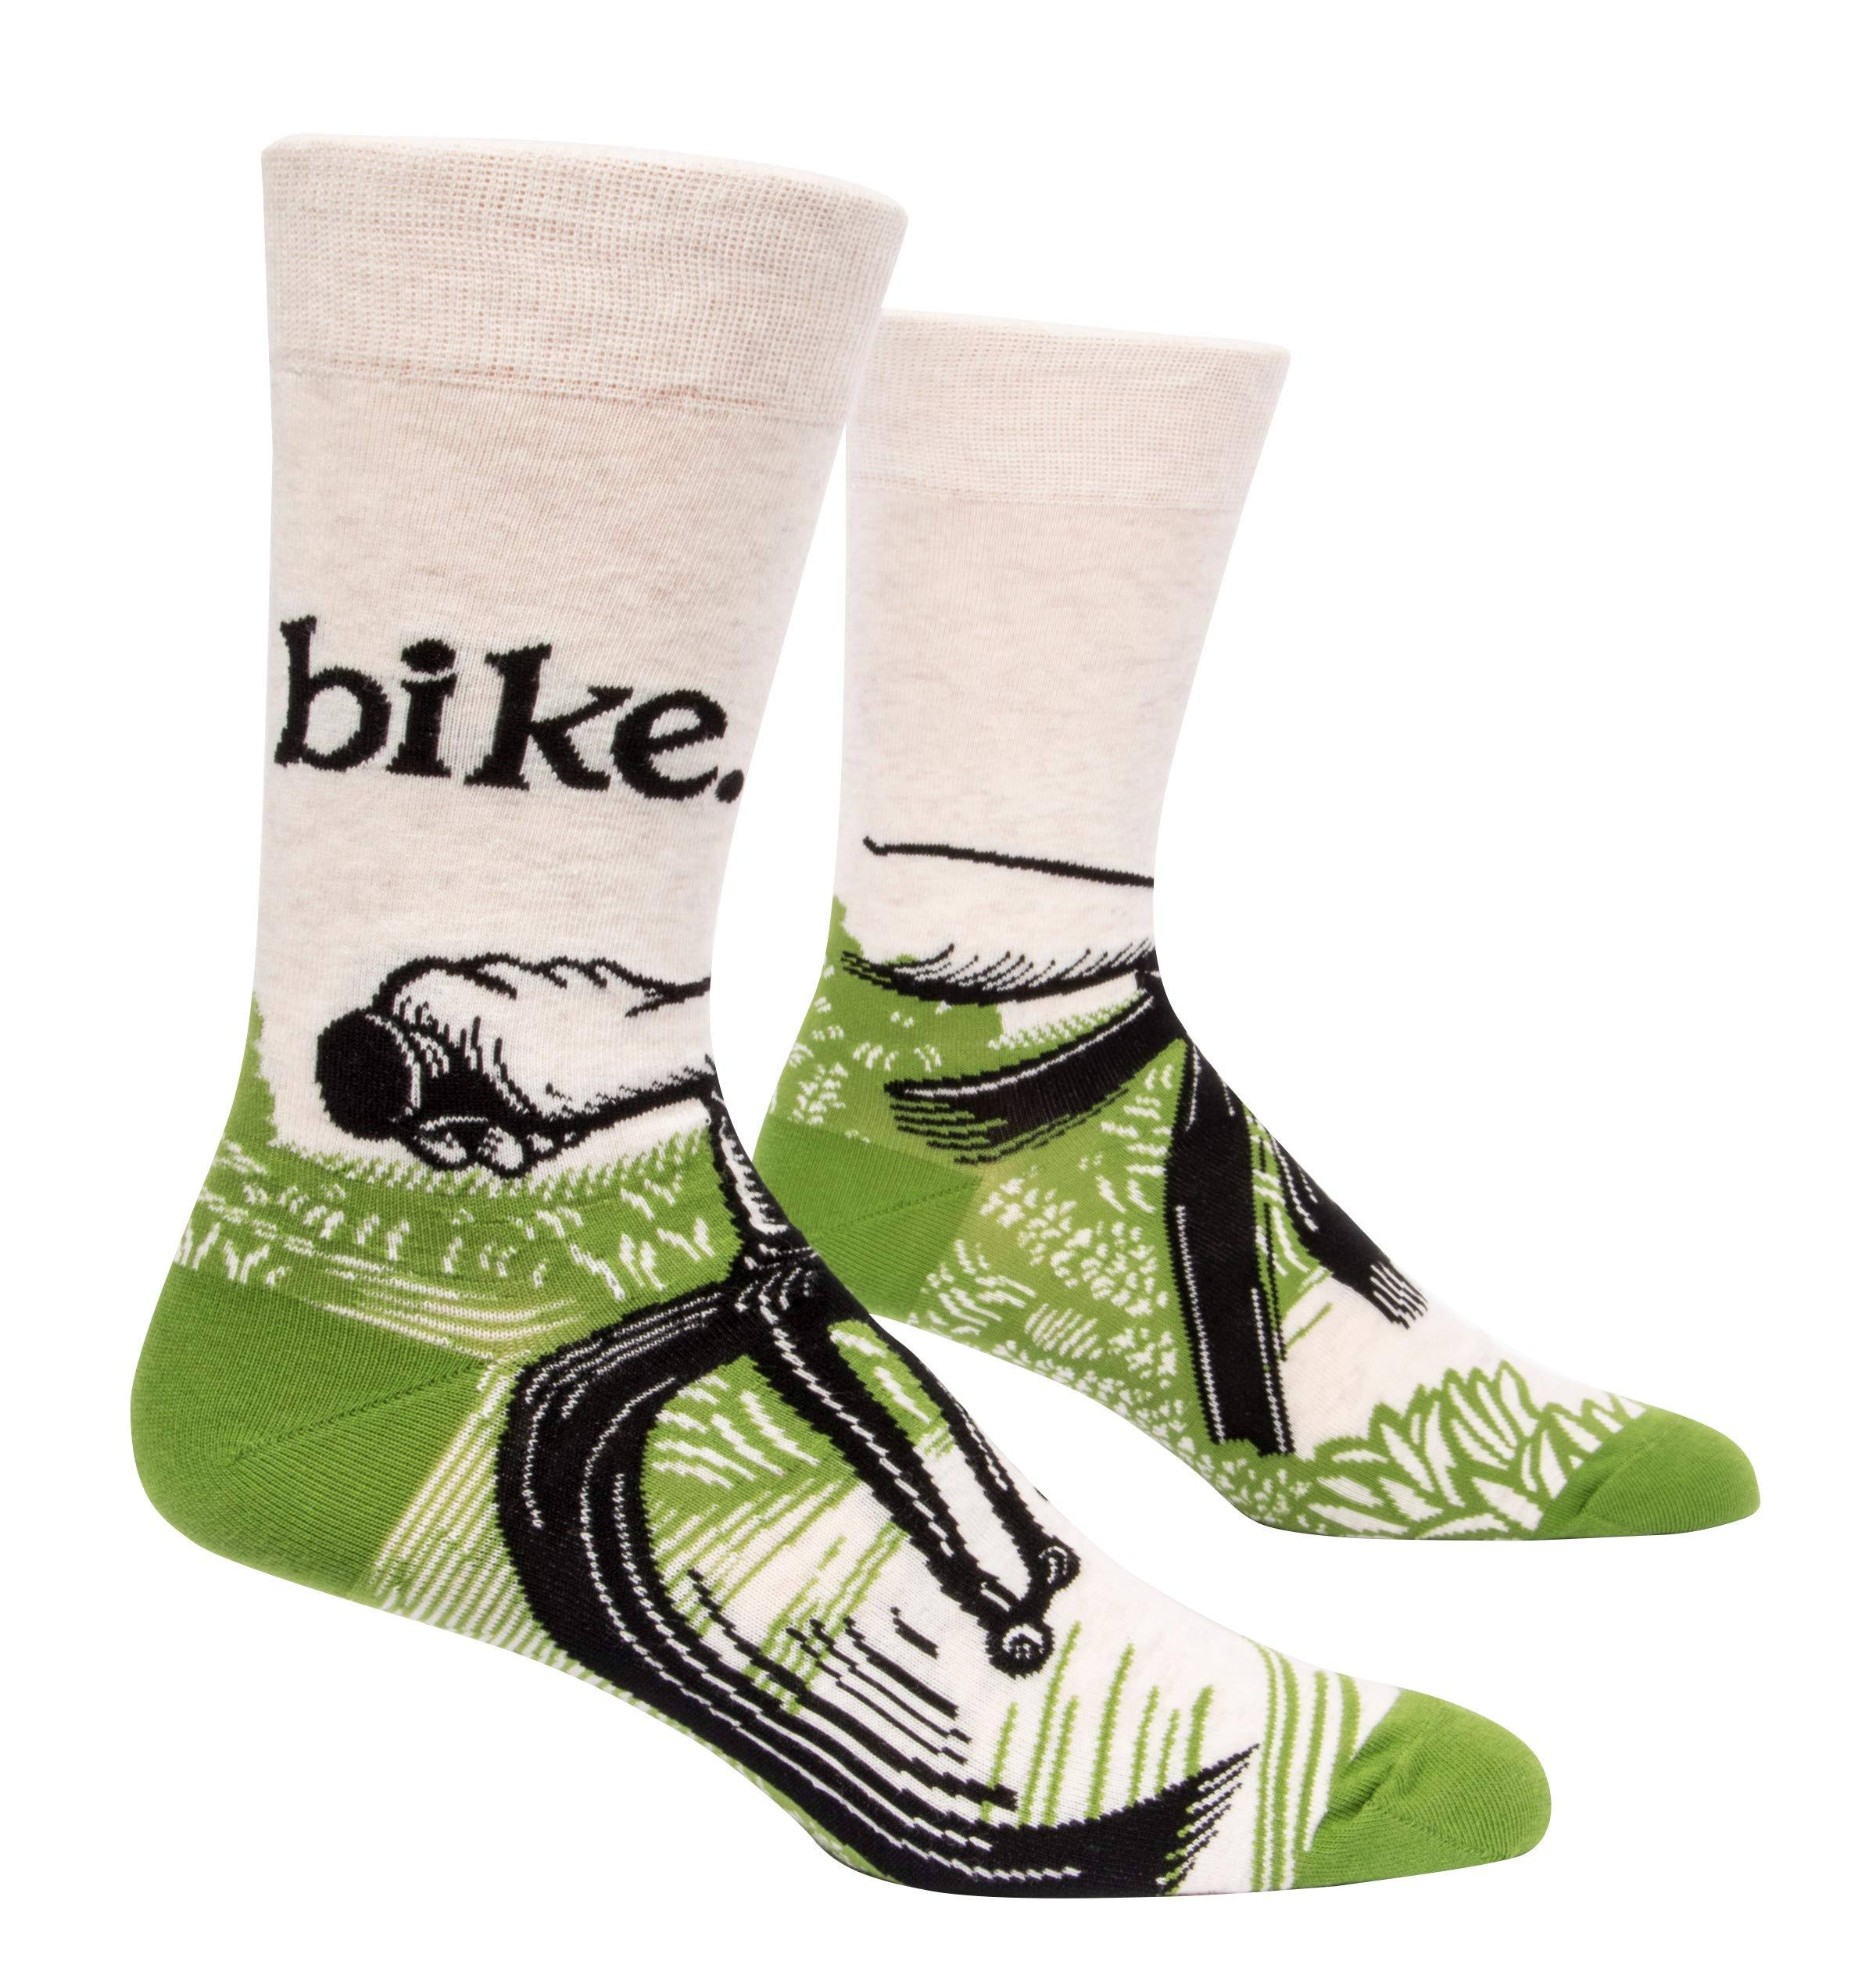 Blue Q - Bike Path Crew Socks | Men's